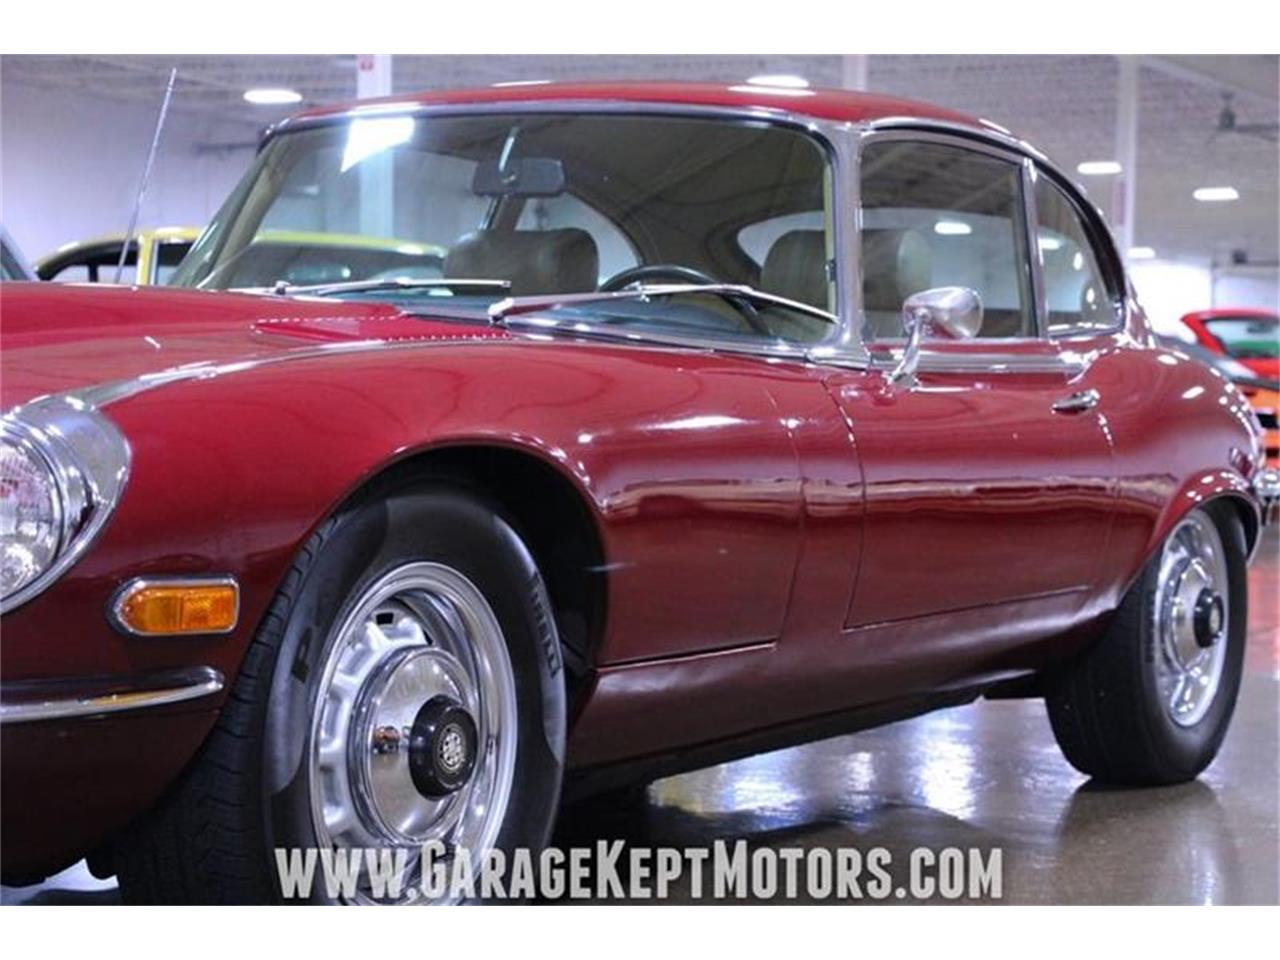 Large Picture of 1971 Jaguar E-Type located in Grand Rapids Michigan - $62,900.00 - QP0V